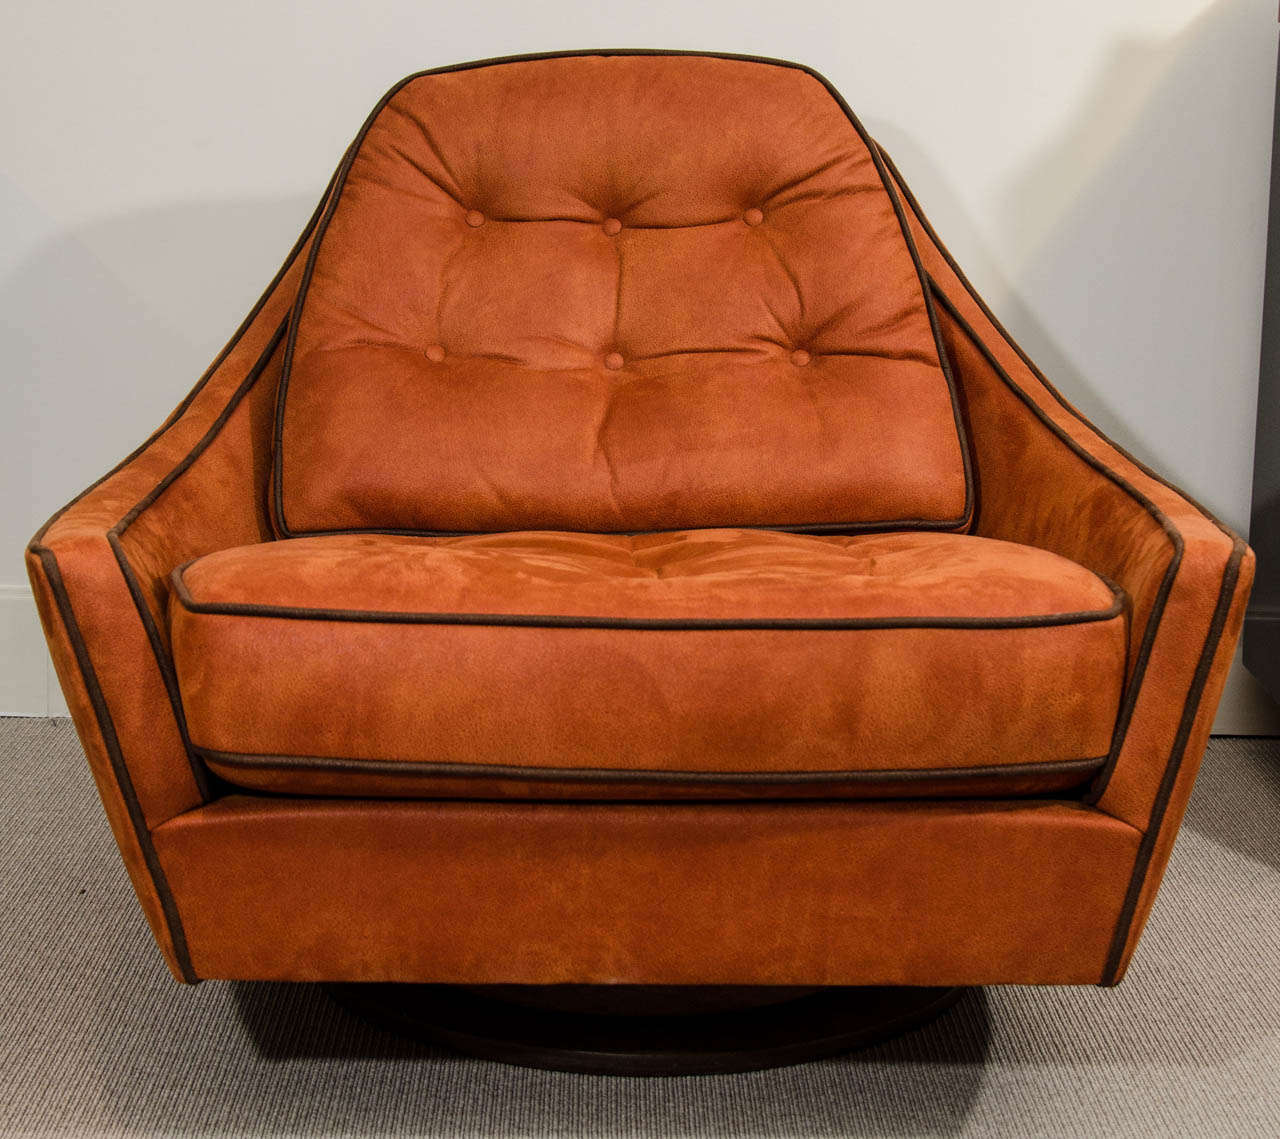 swivel club chair with ottoman heavy duty patio chairs vintage and at 1stdibs